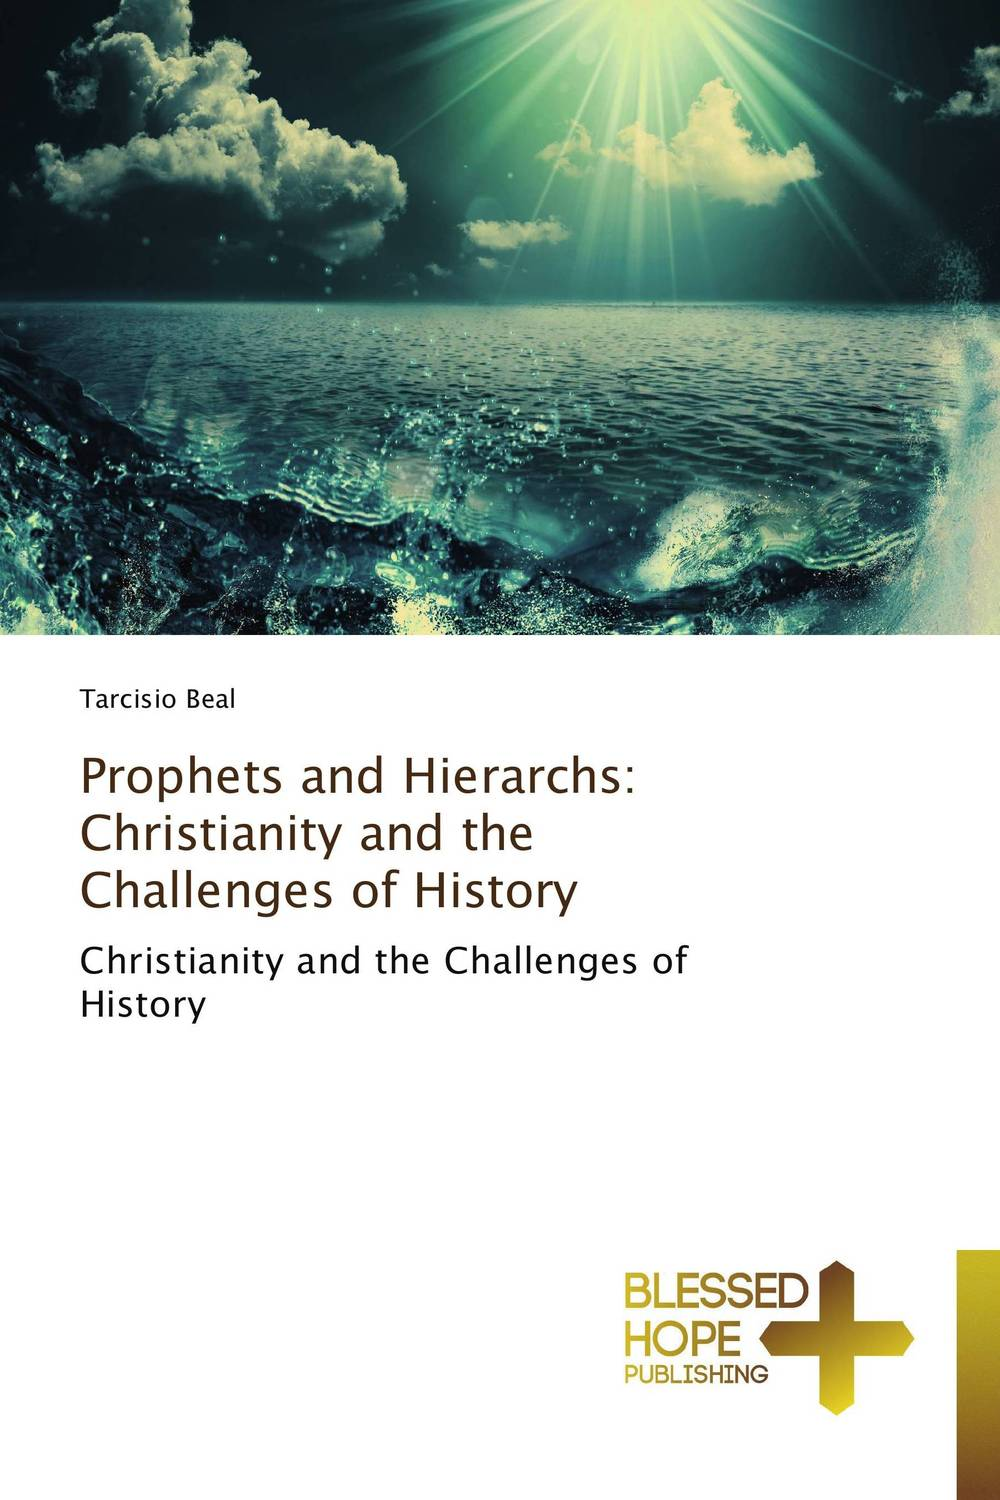 Prophets and Hierarchs: Christianity and the Challenges of History carter lindberg a brief history of christianity